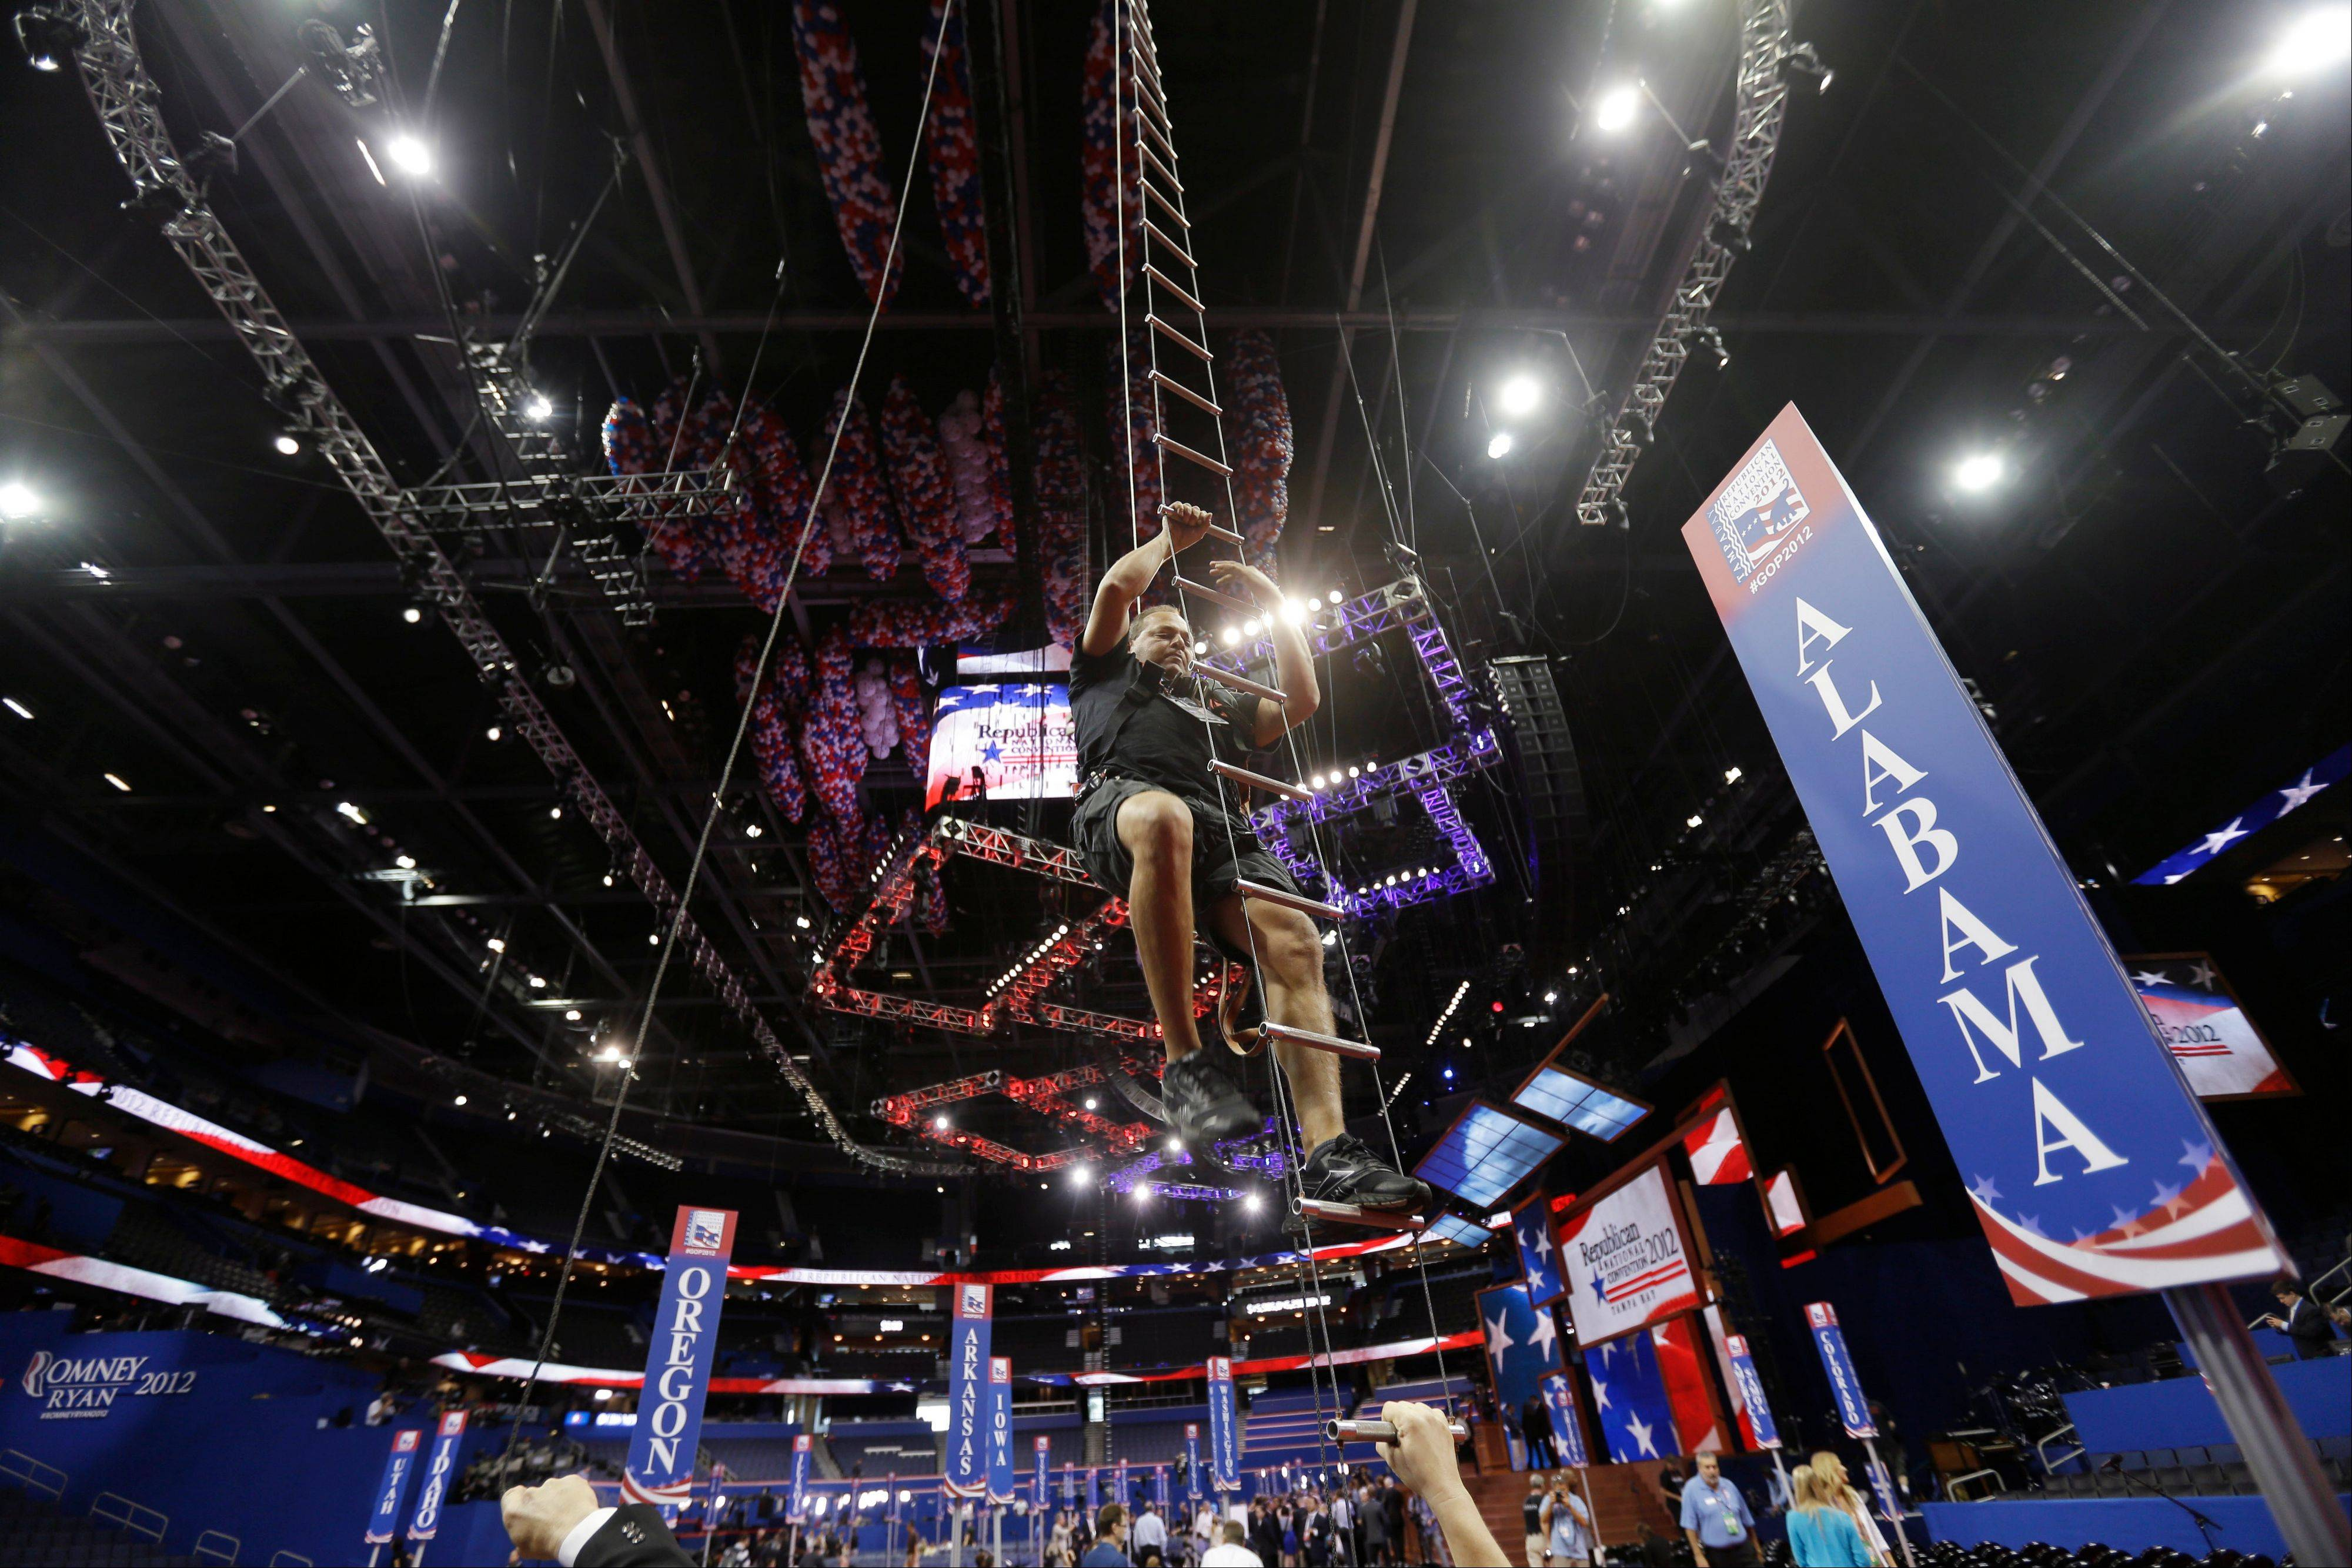 Rigger Omar Acebedo climbs down on on a ladder to floor of the Republican National Convention in the Tampa Bay Times